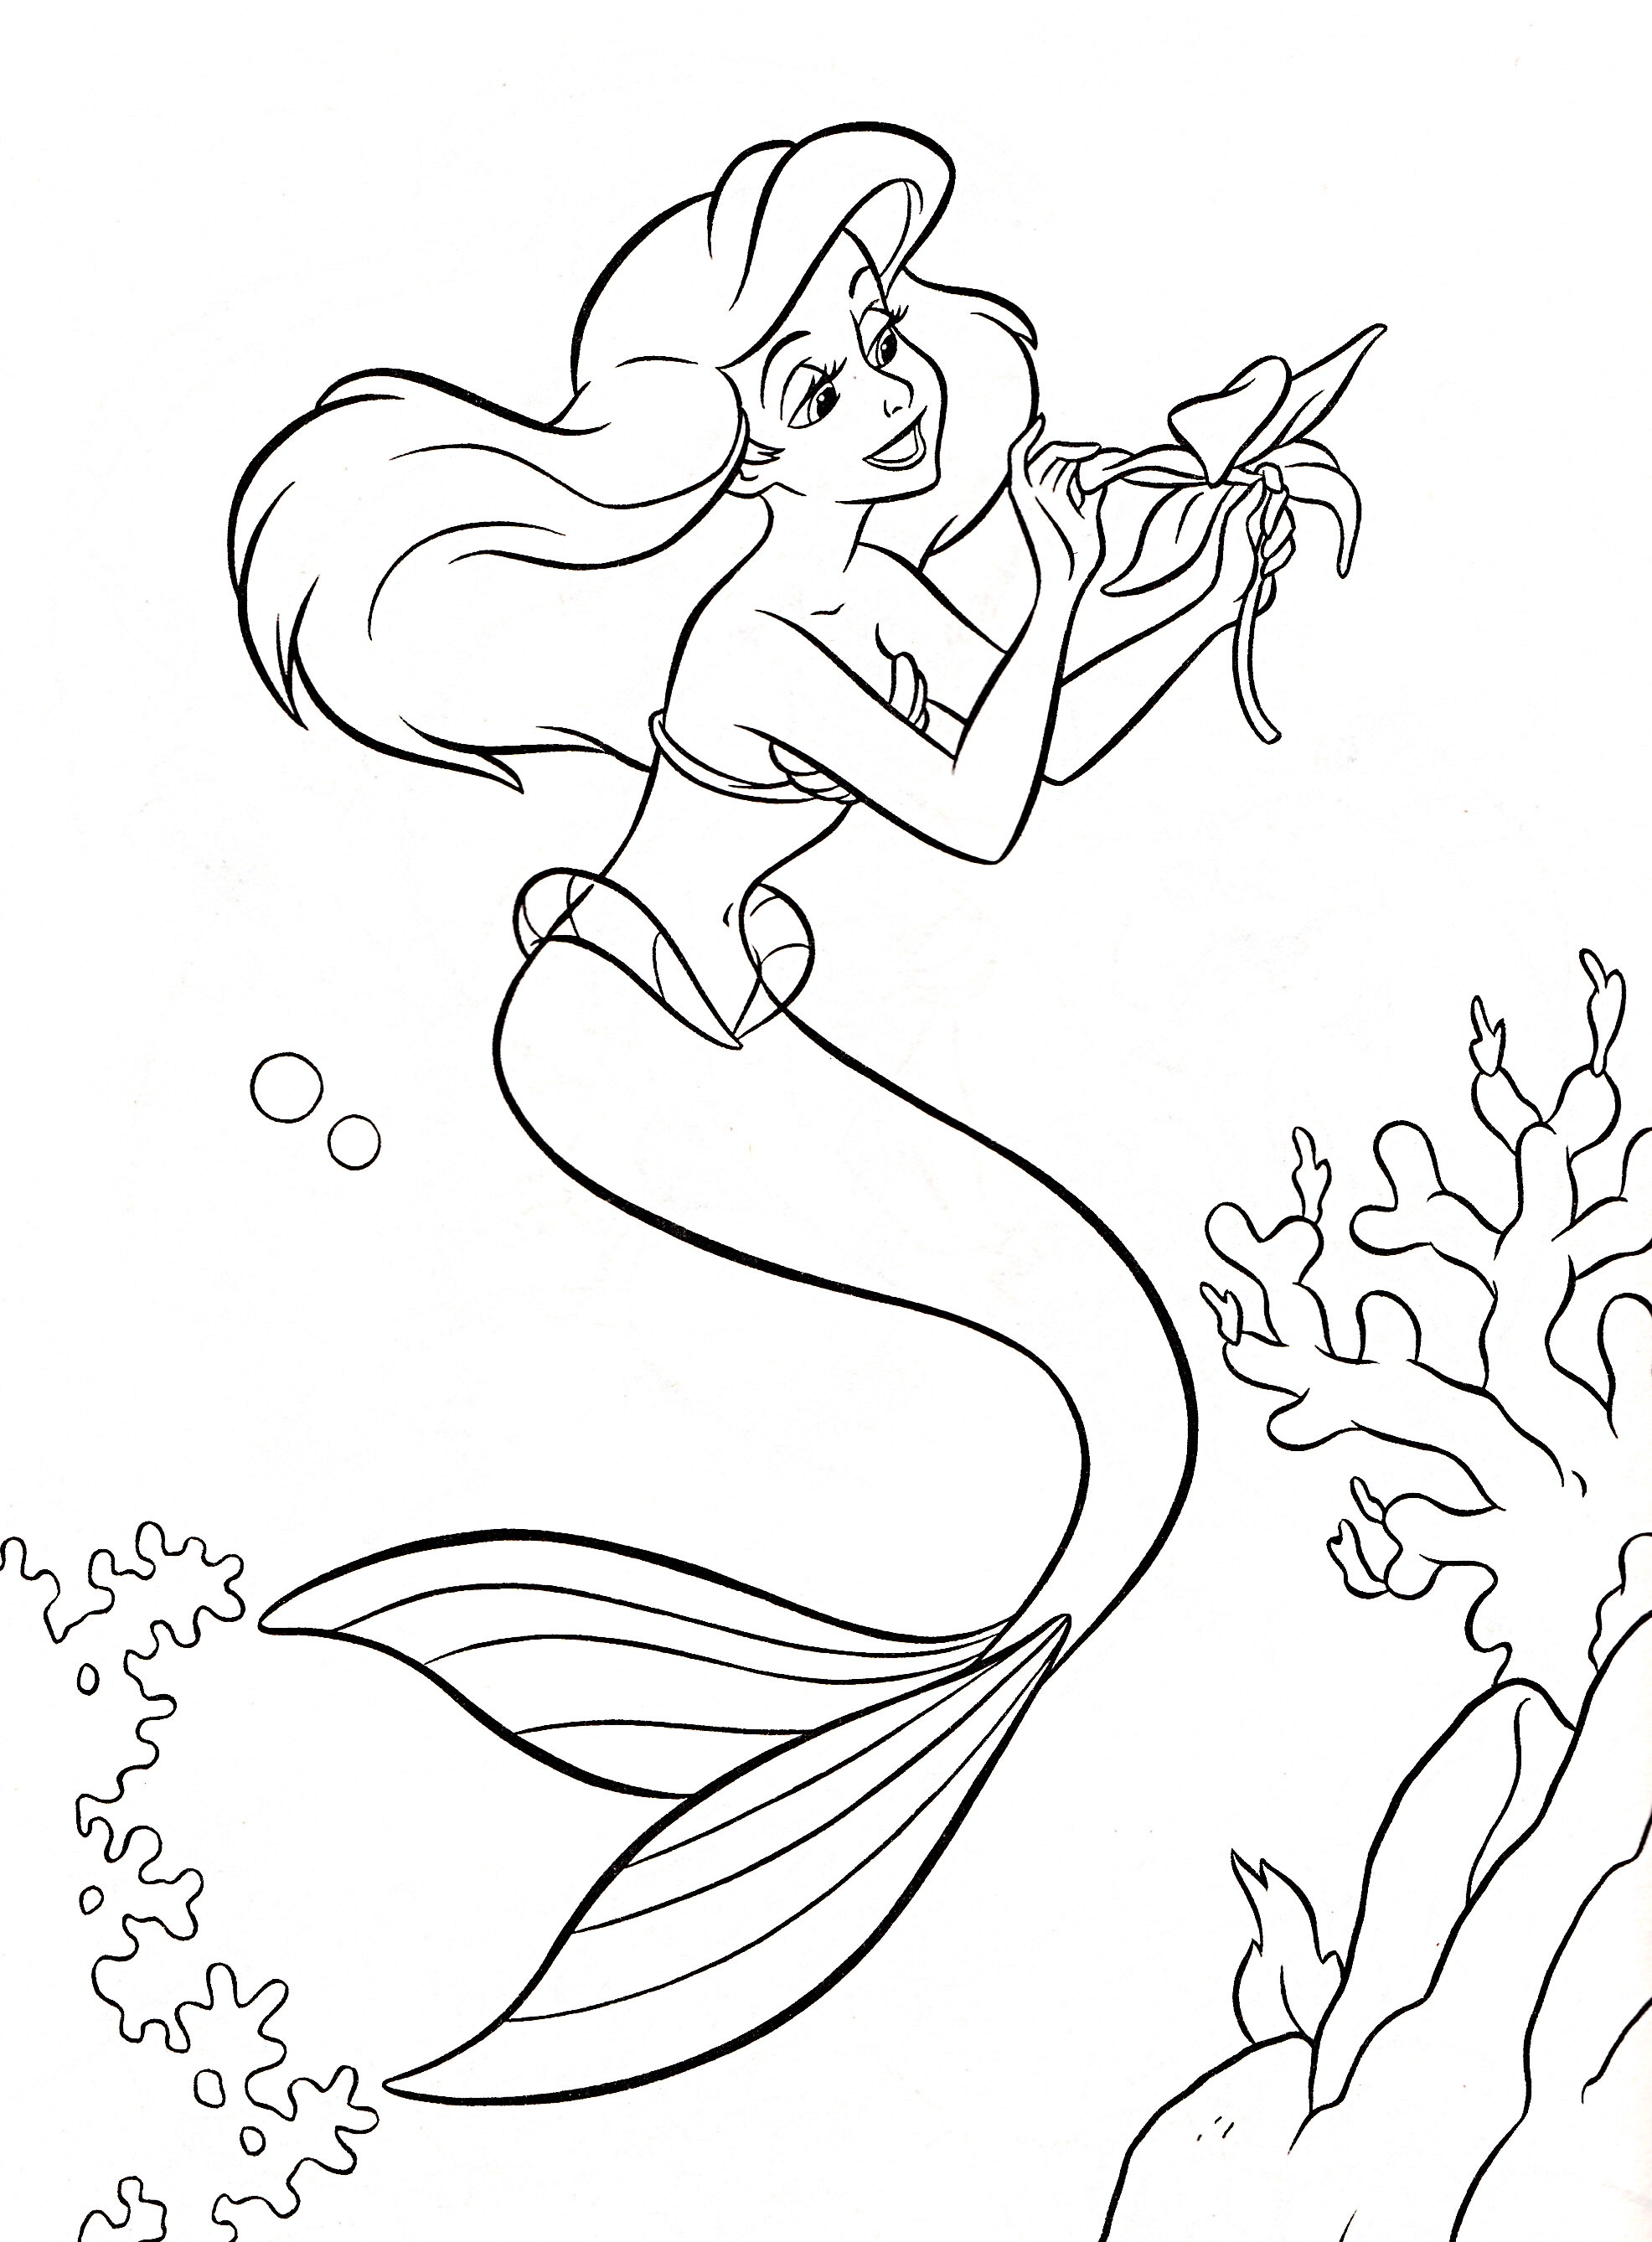 Disney Coloring Pages (23)